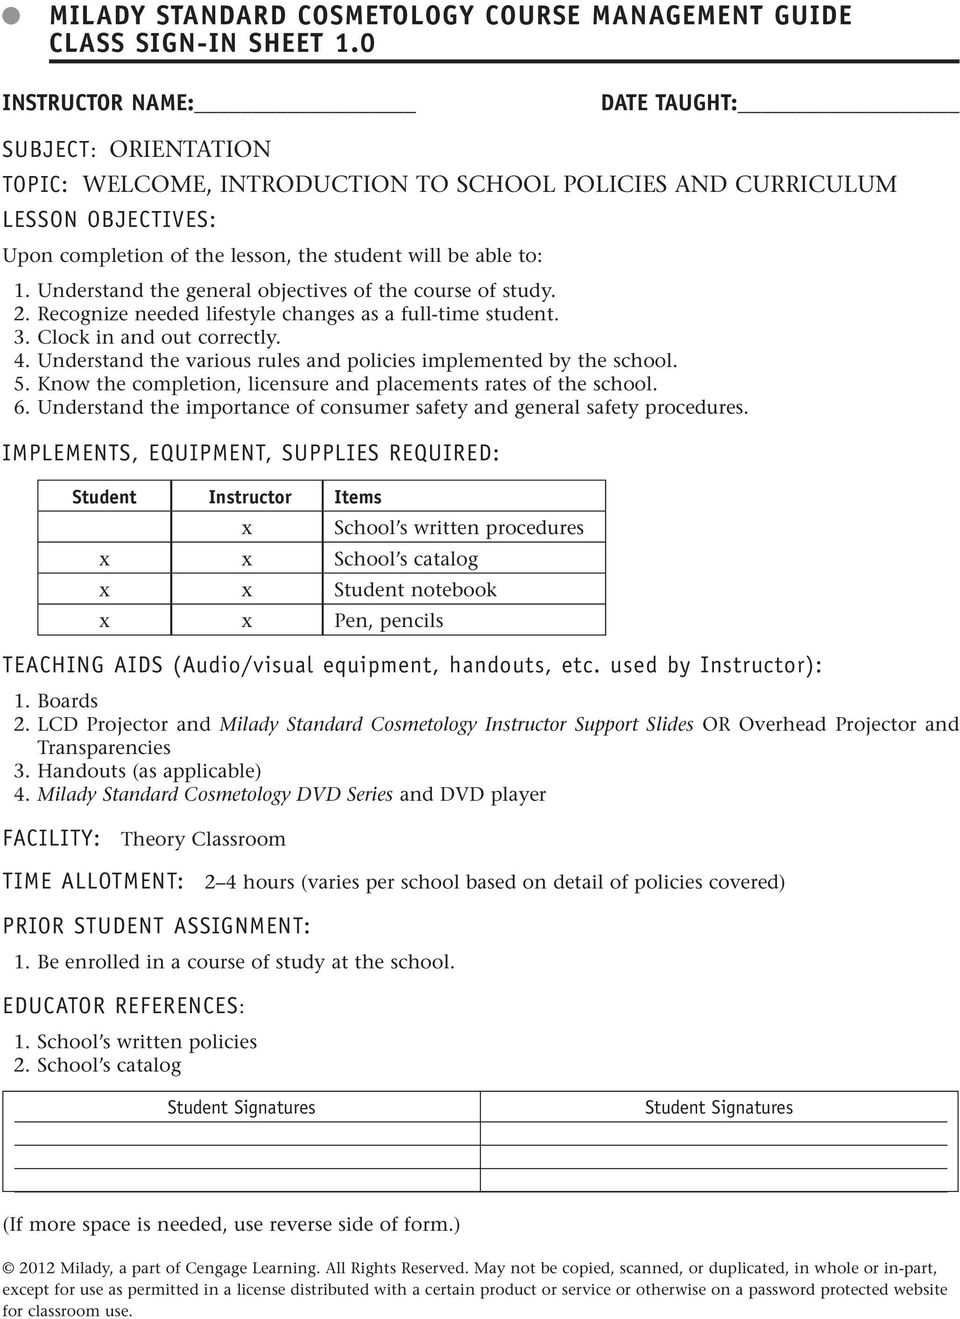 MILADY STANDARD COSMETOLOGY COURSE MANAGEMENT GUIDE CLASS